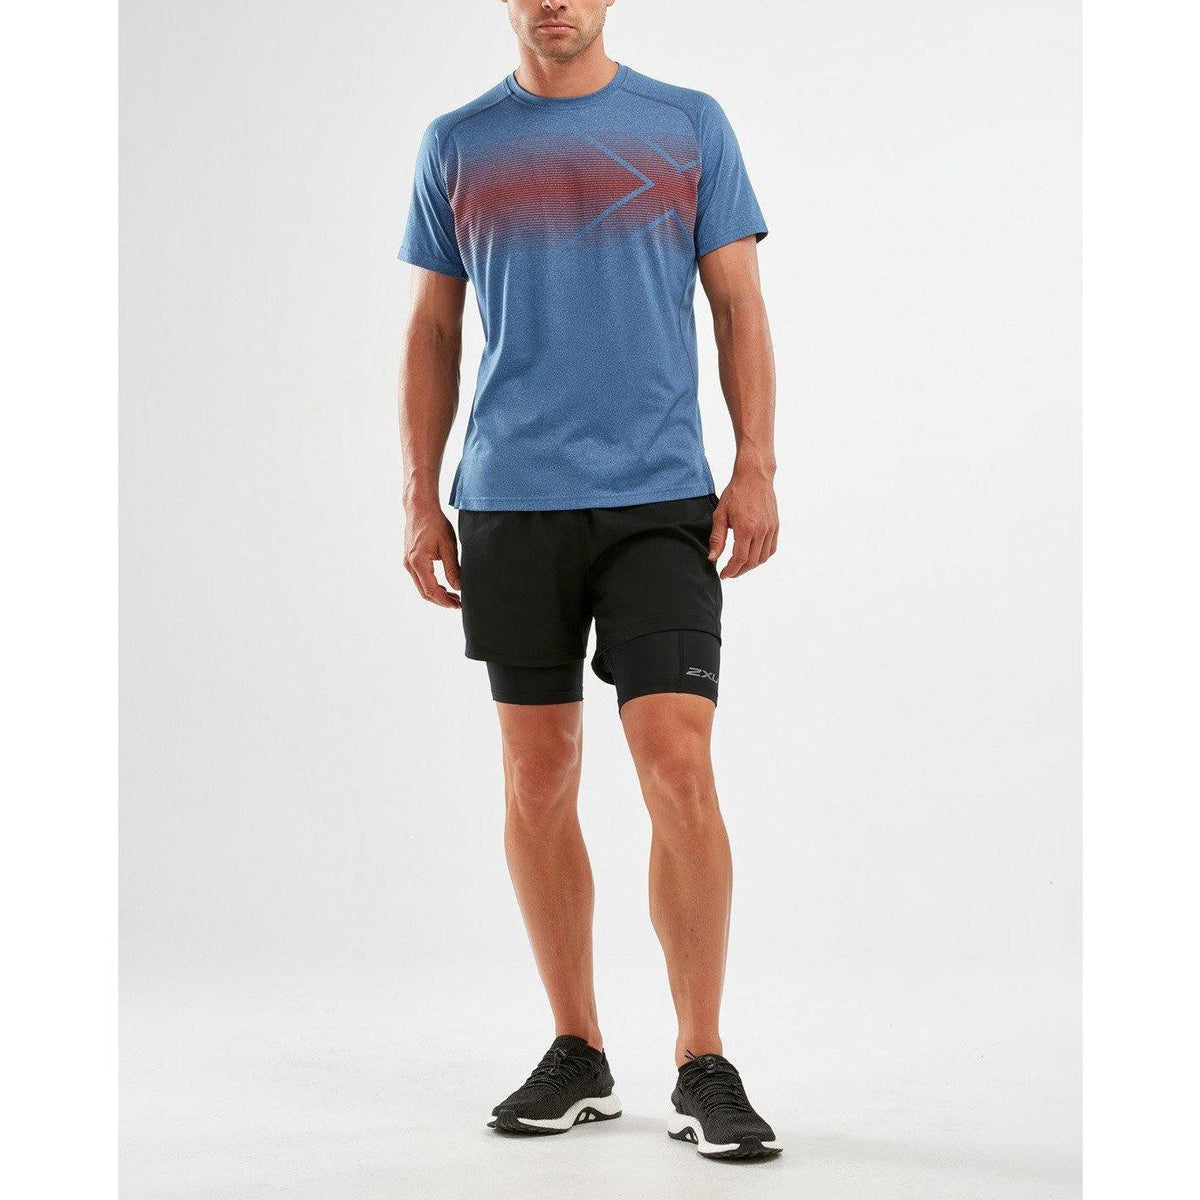 2XU Training T-Shirt Mens